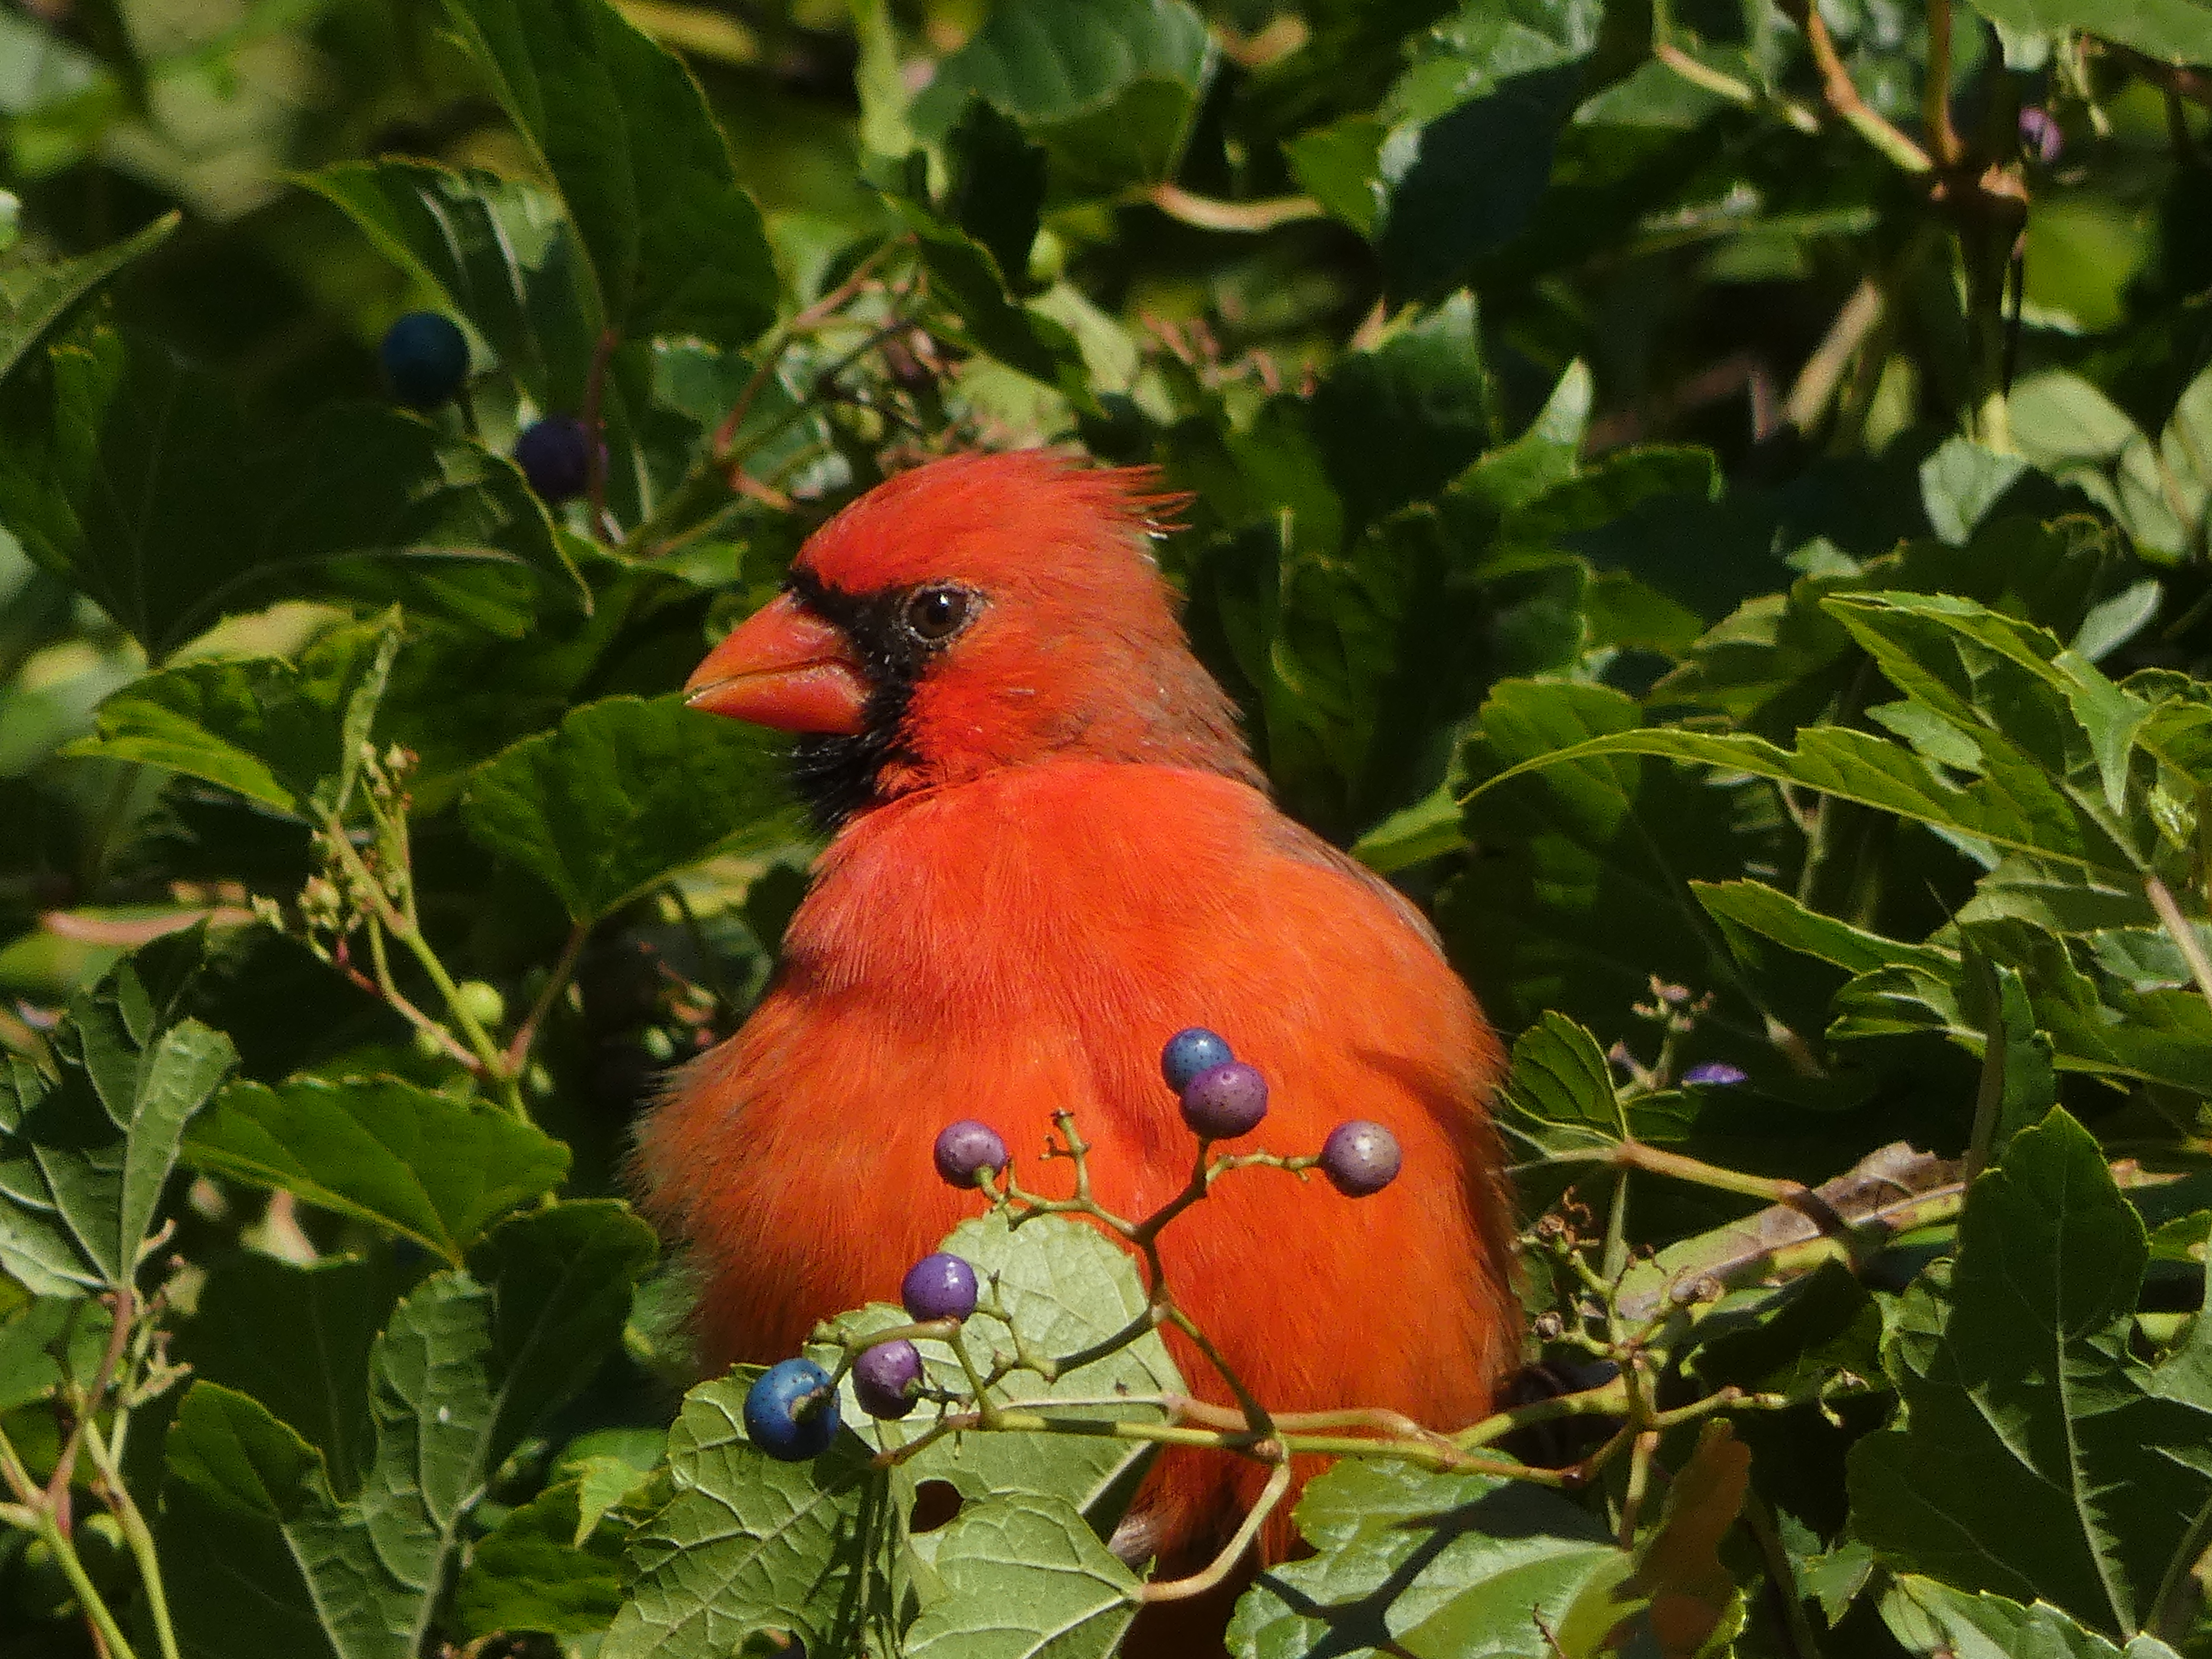 This handsome boy seemed to be drunk off the berries. Too full to move!